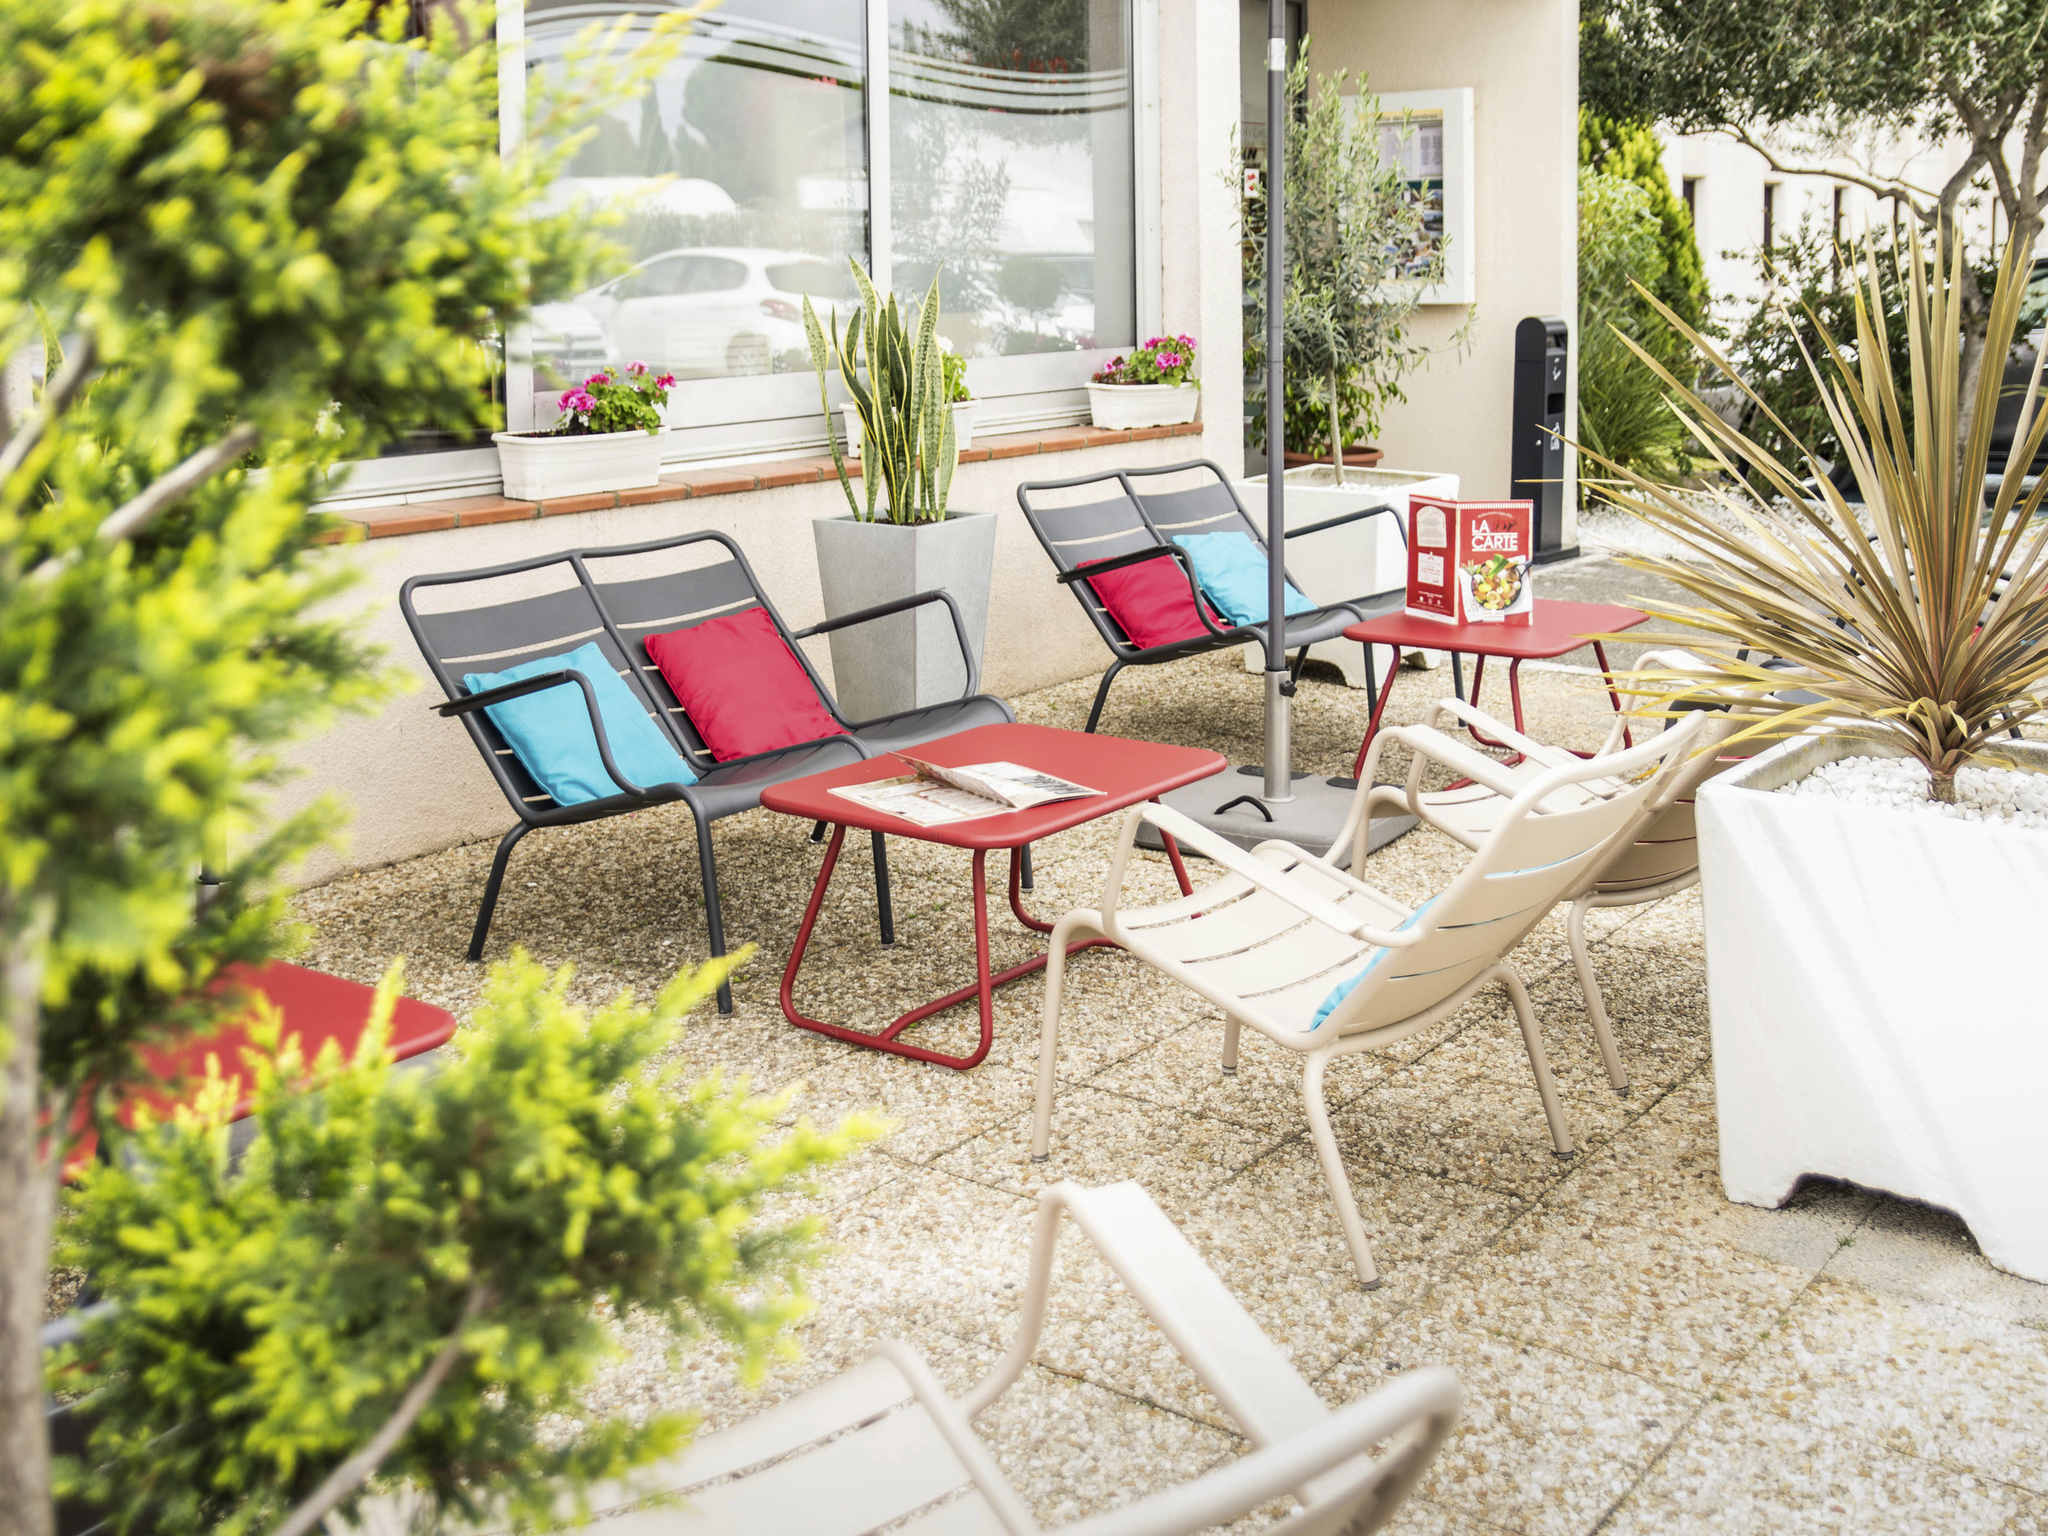 Hotel em narbonne ibis narbonne for Hotels narbonne